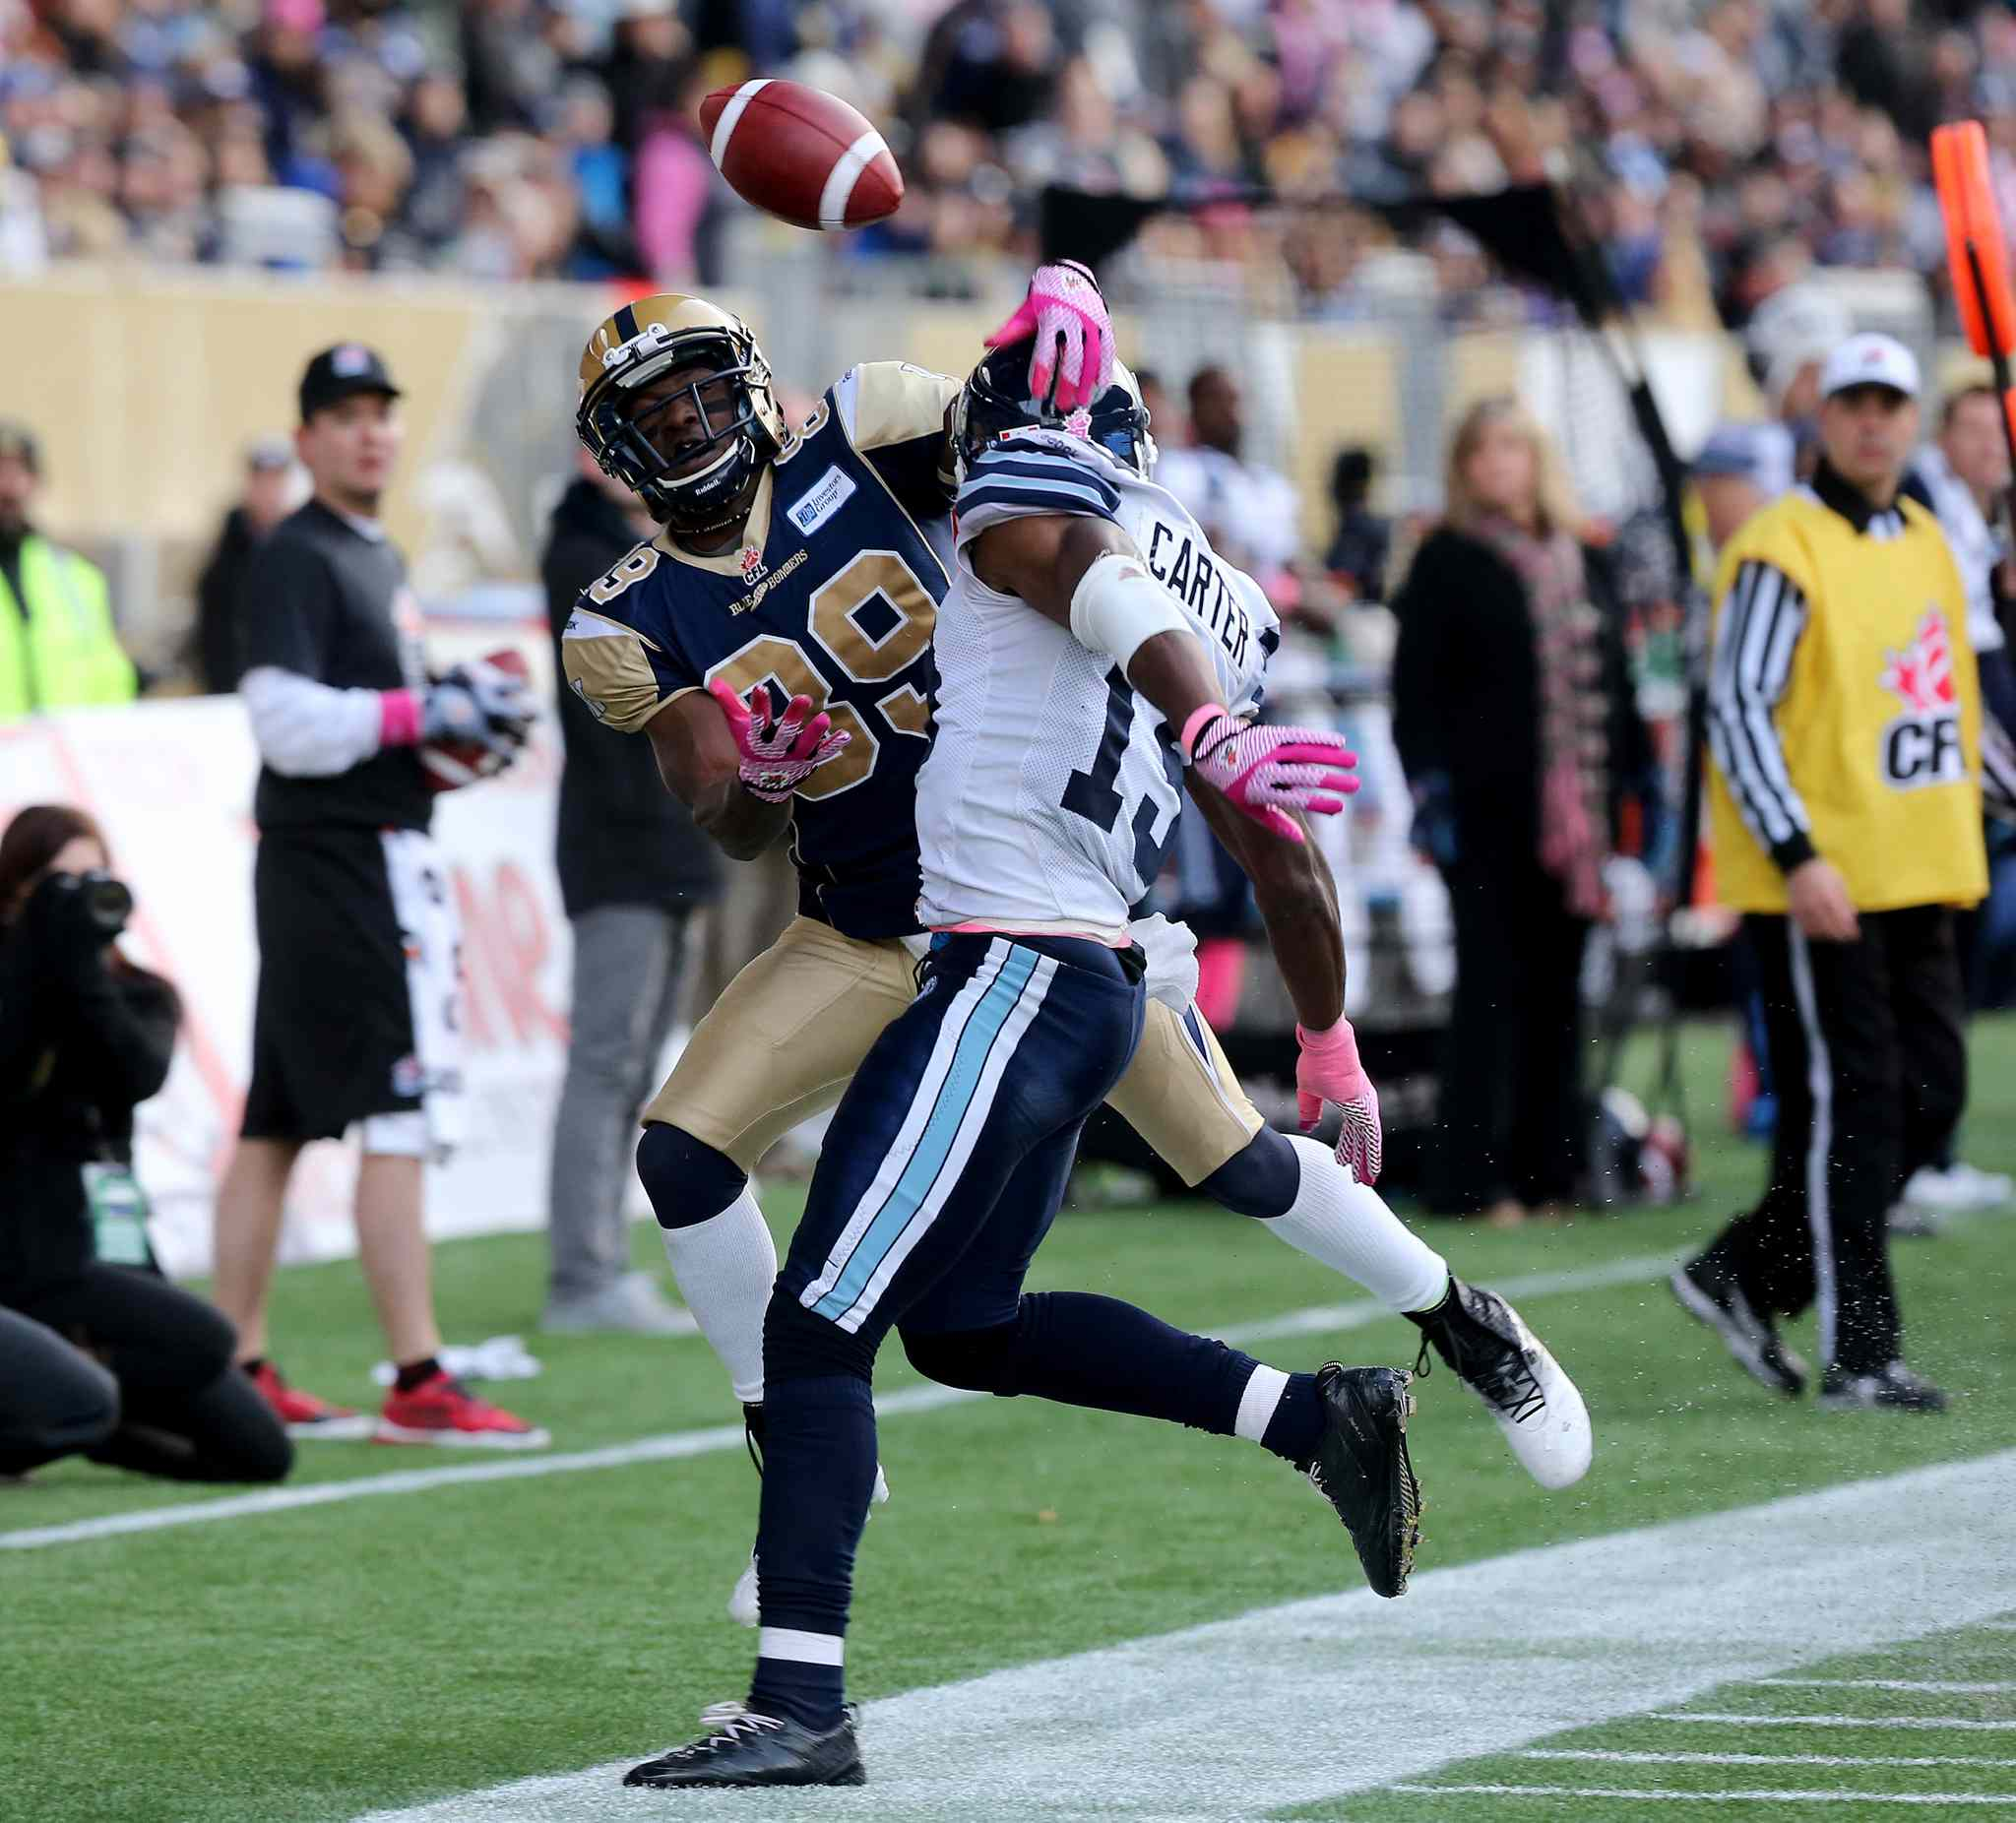 Winnipeg Blue Bombers' Clarence Denmark (89) tries unsuccessfully to bring in a pass as he's forced out of bounds by Toronto Argonauts' Jalil Carter (19) during the second half.